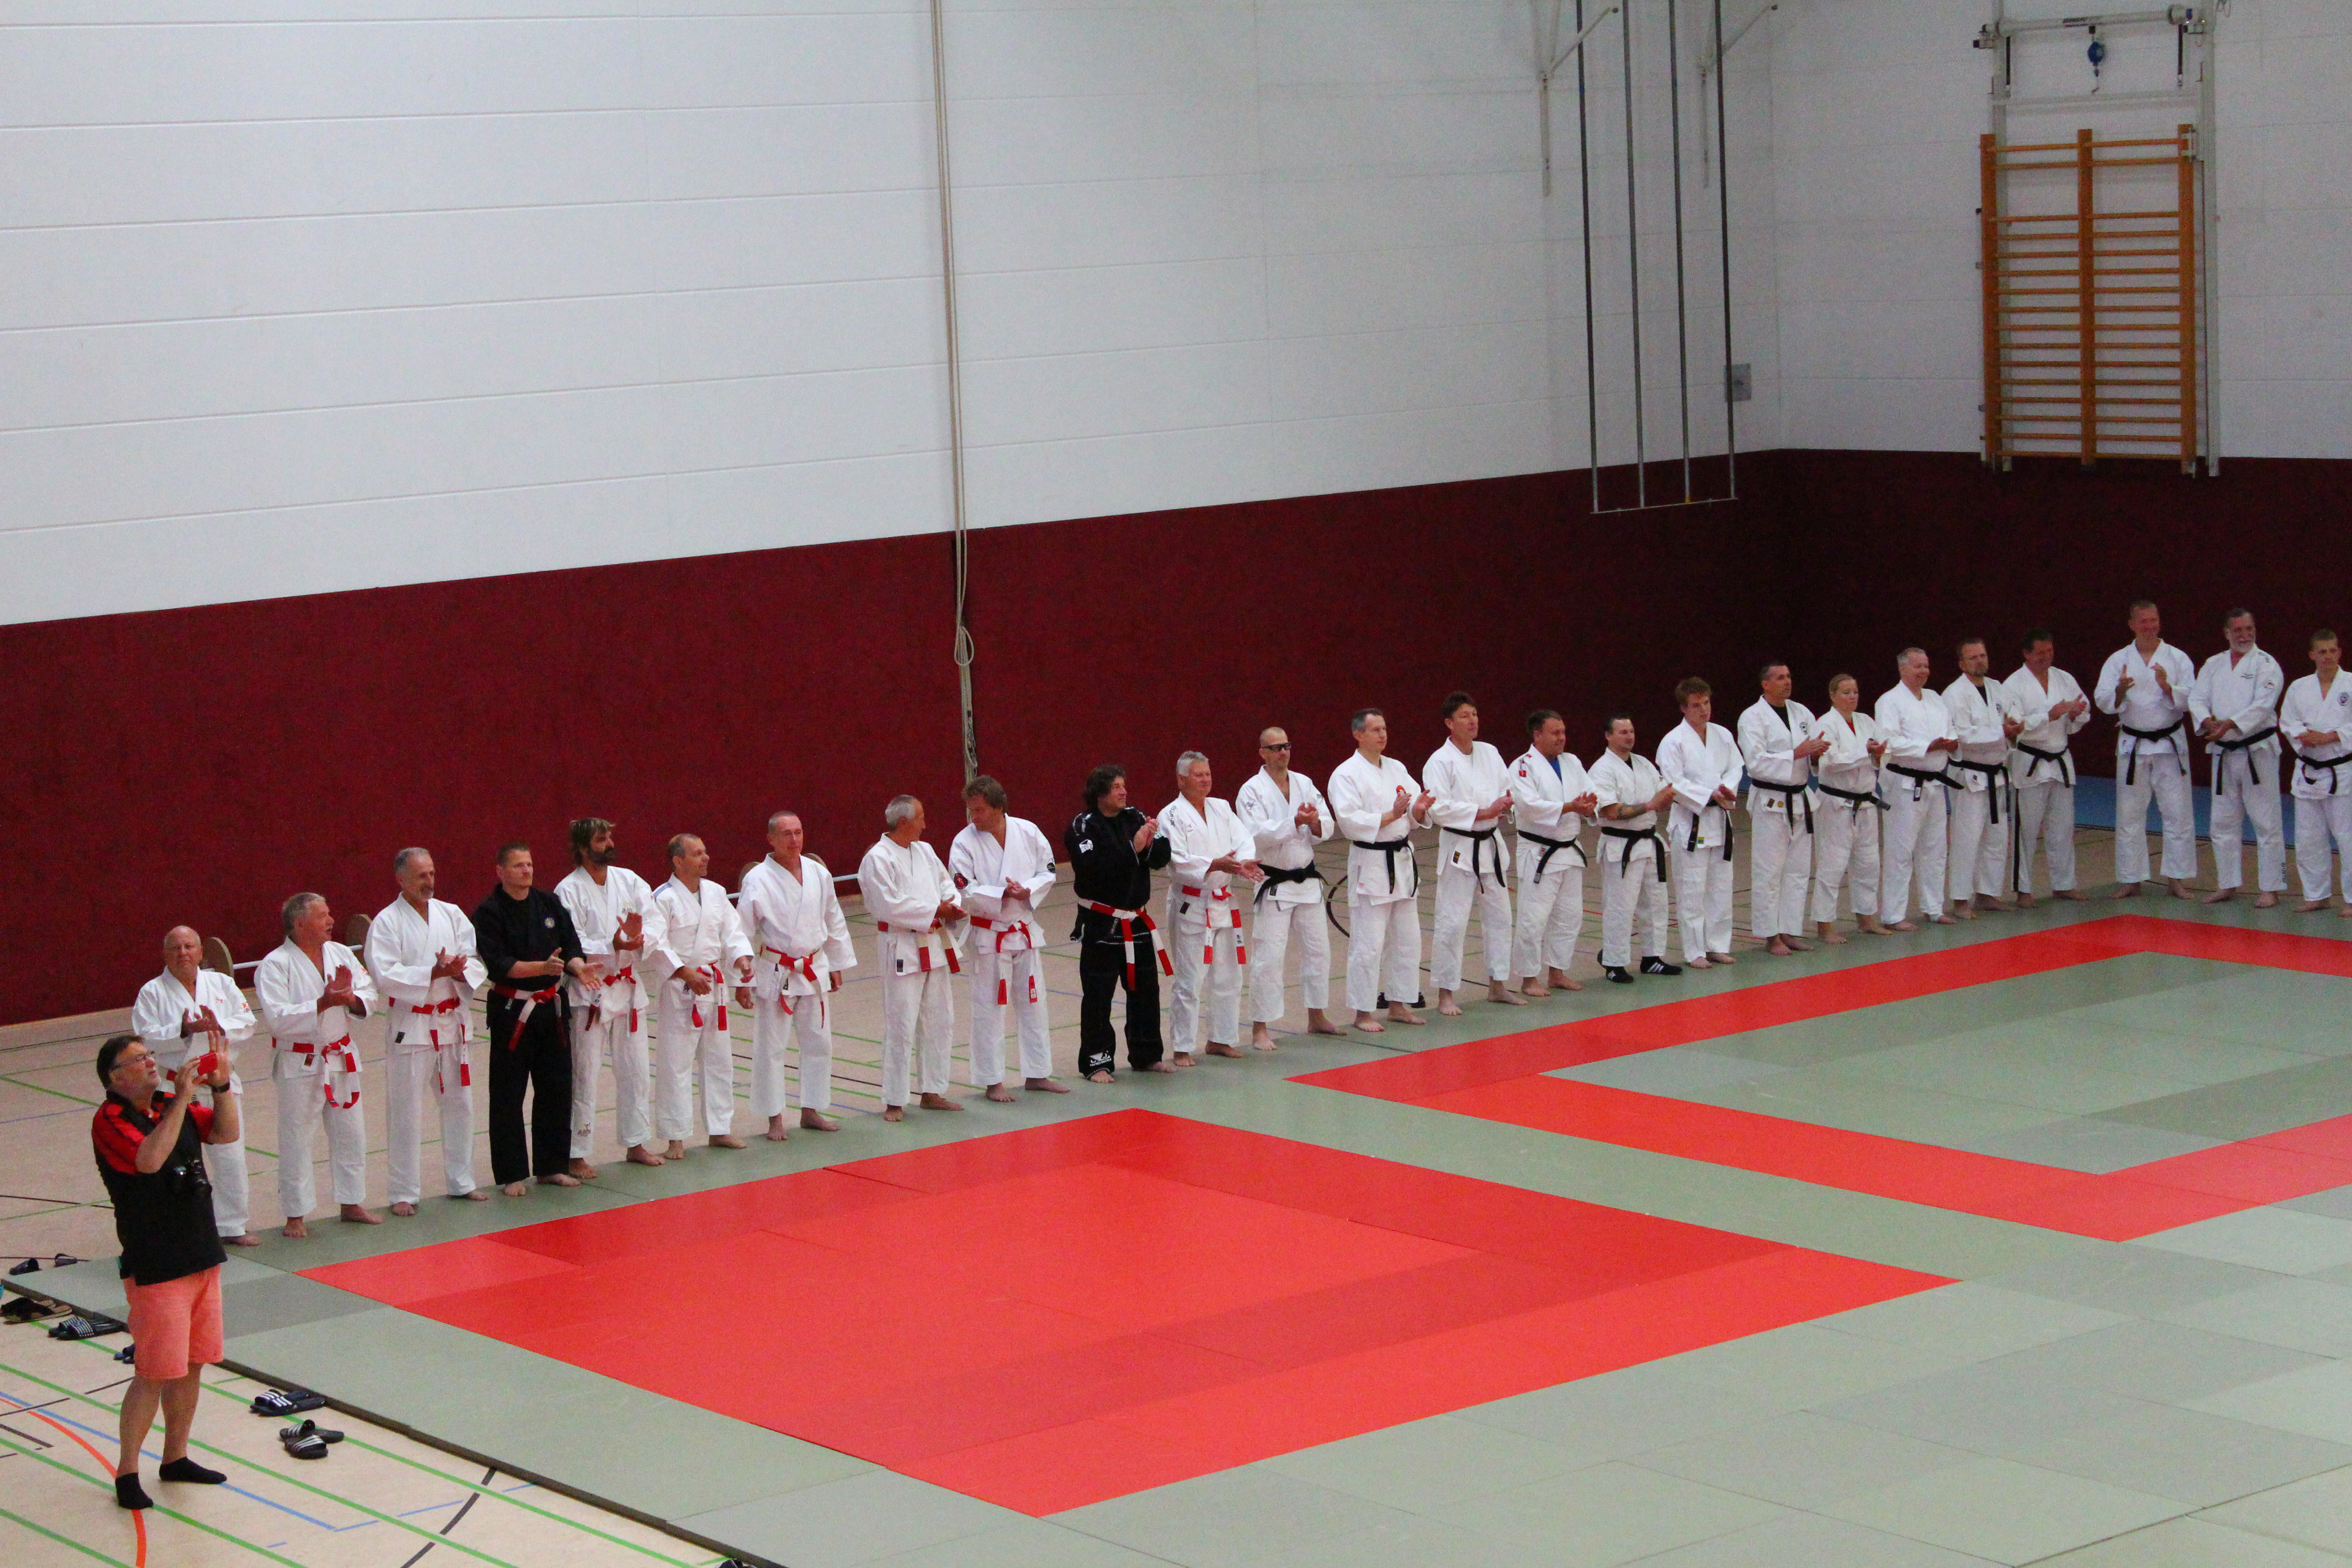 Lots of people, large mat